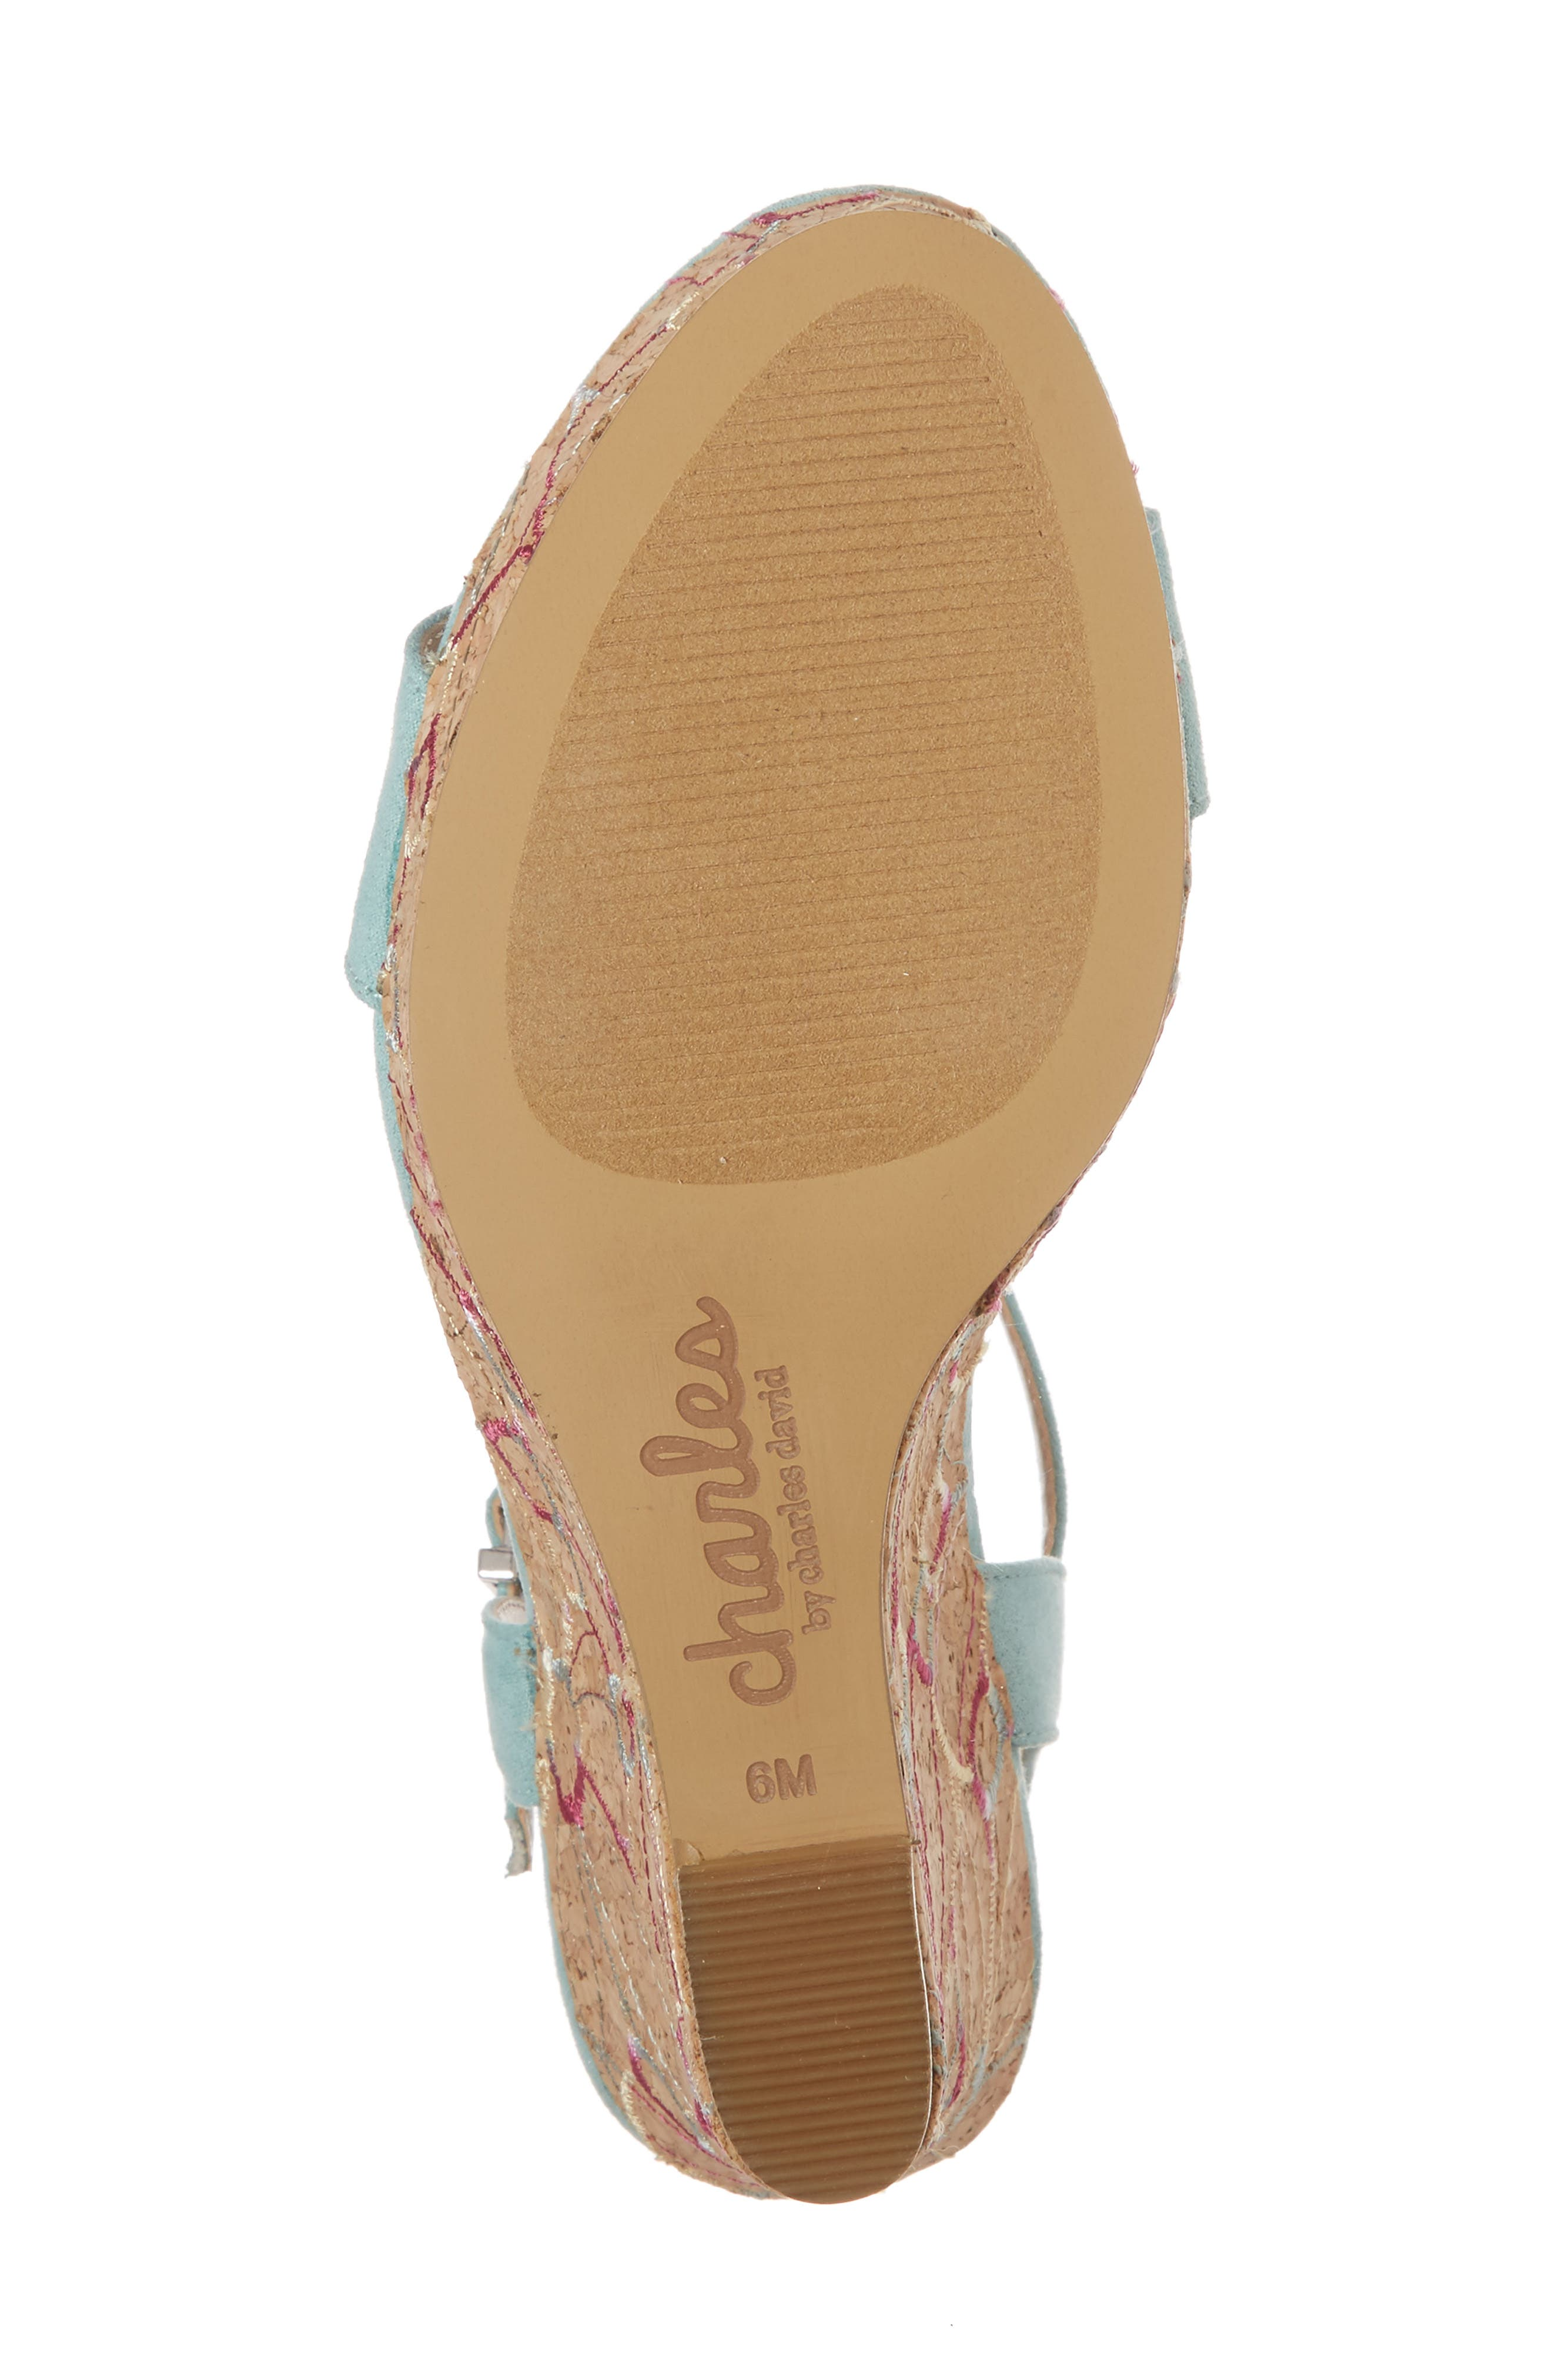 Laney Embroidered Wedge Sandal,                             Alternate thumbnail 6, color,                             Mint Green Suede